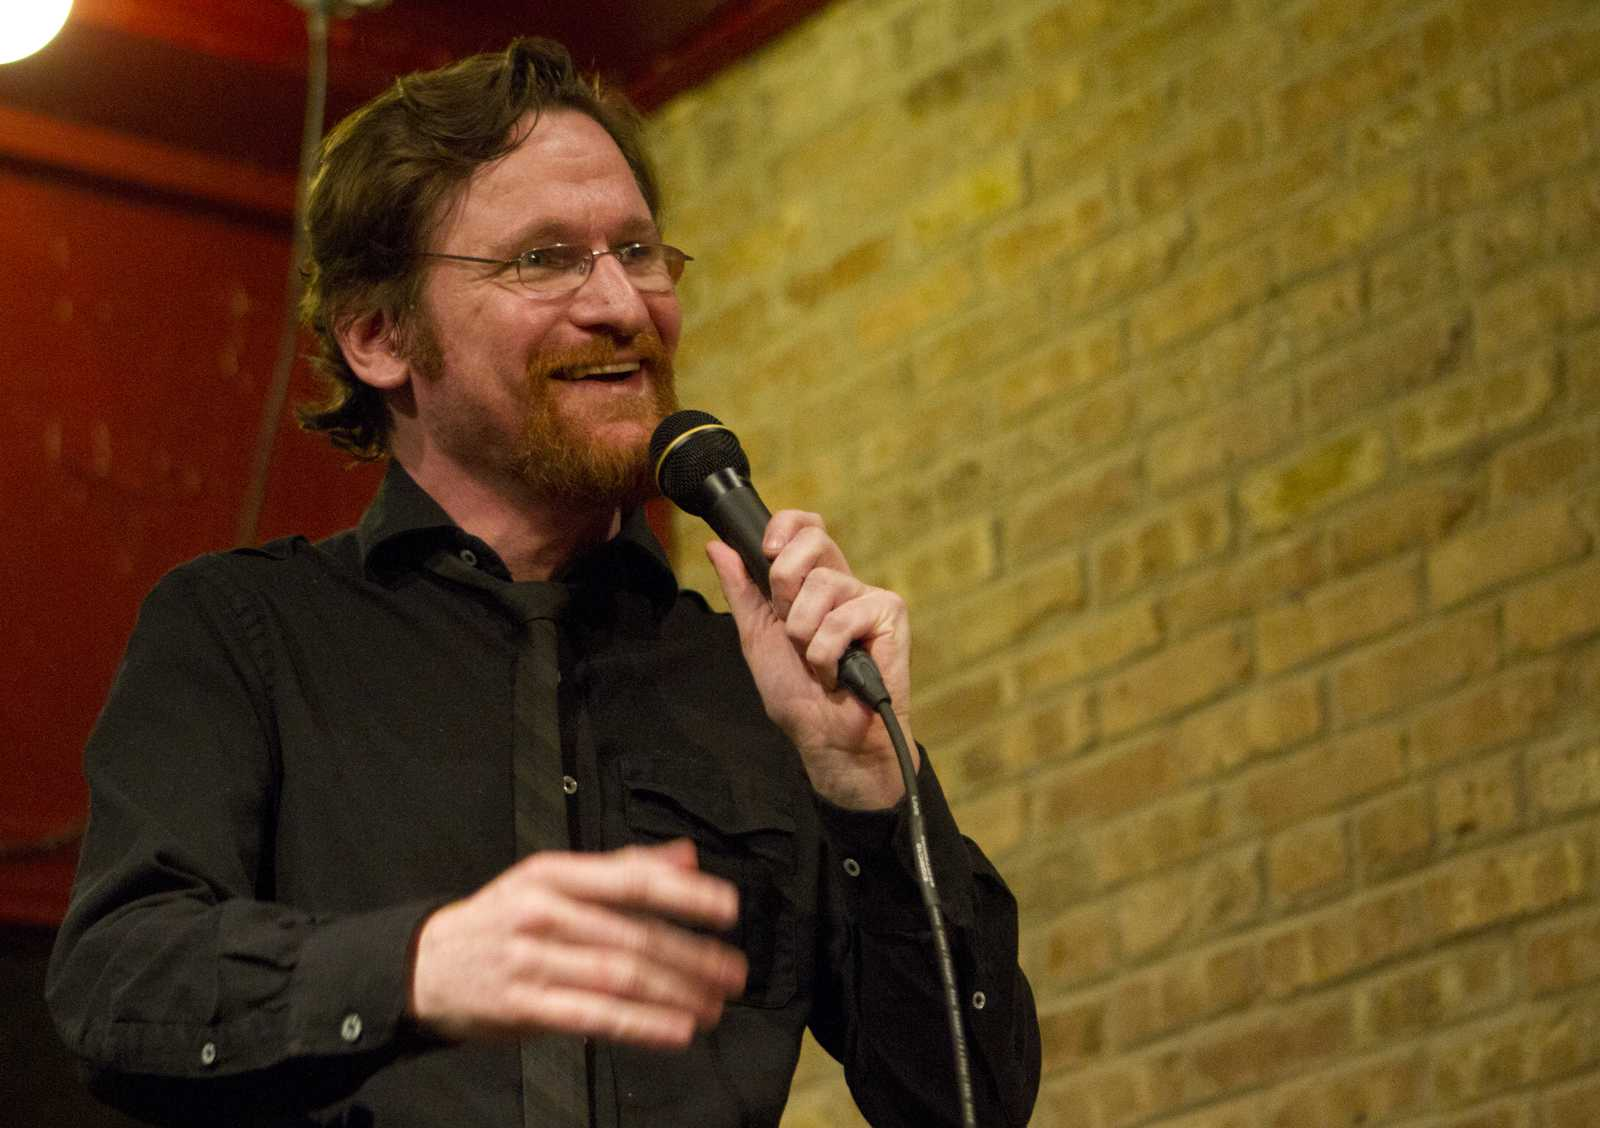 Comedian Adam Burke performs for an audience of 15 at Evanston's J.J. Java. The event was part of a new weekly show at the local coffee shop.